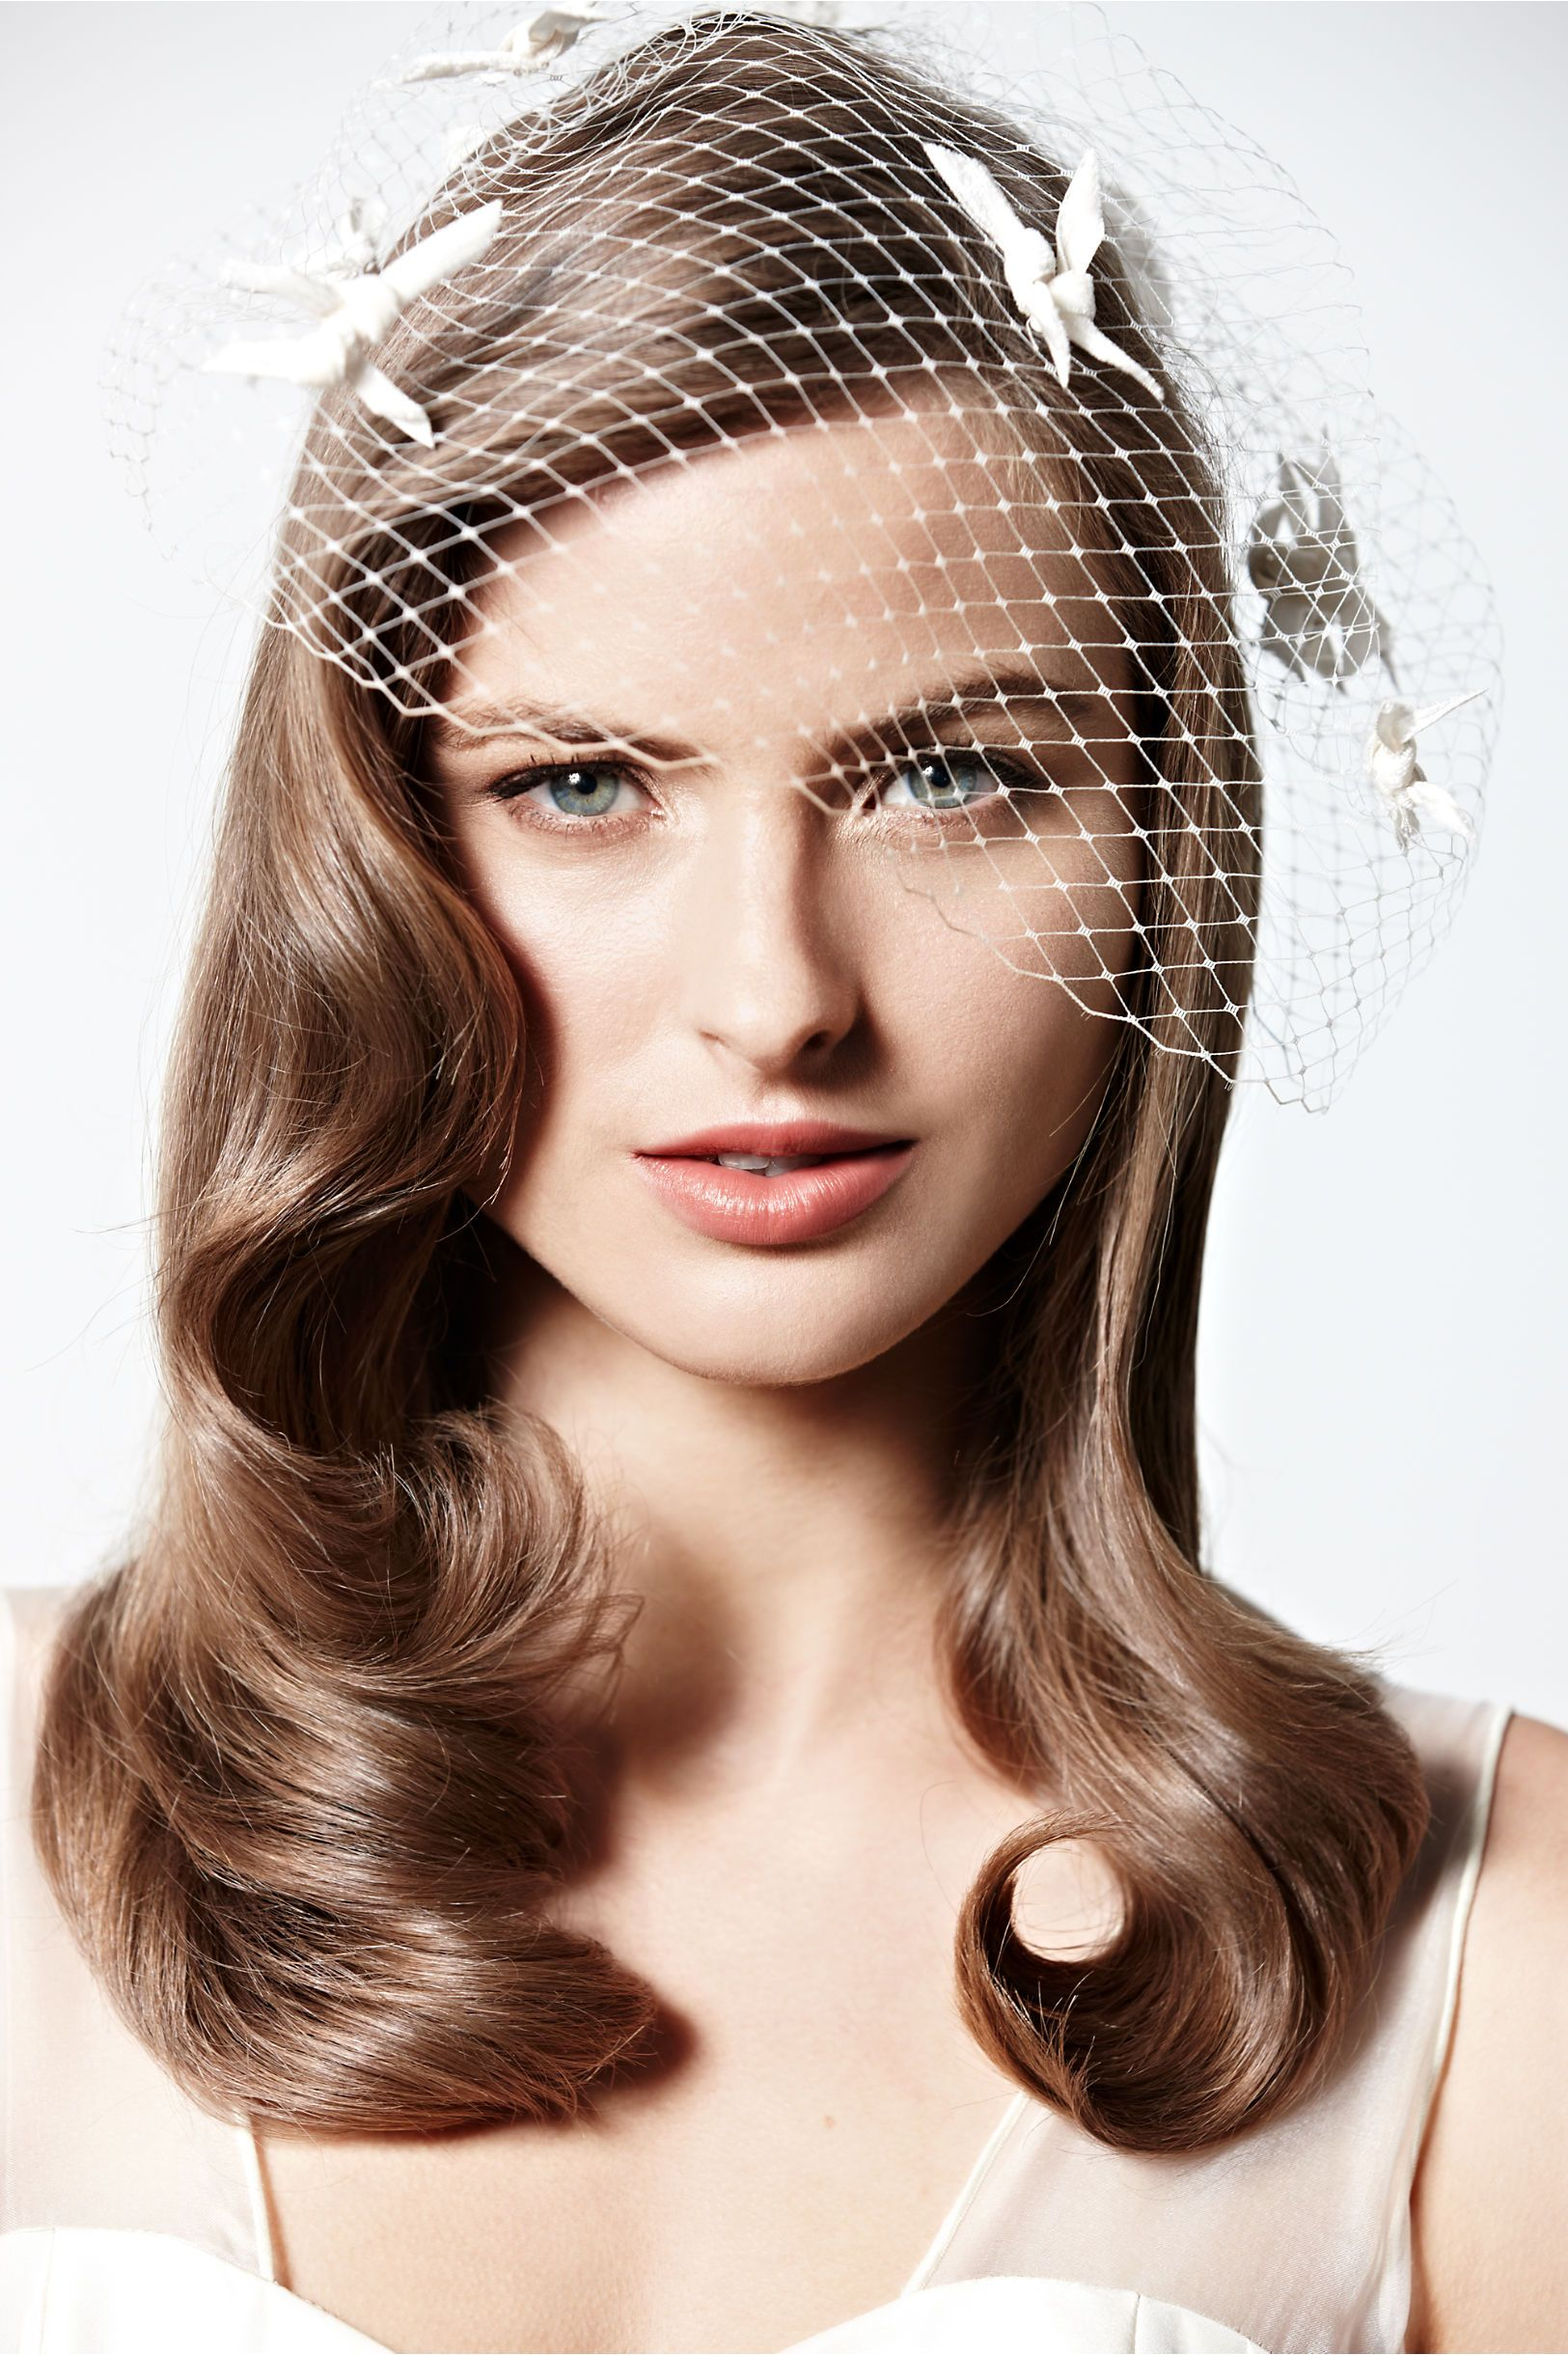 birdcage veil with vintage-styled hair. i wanted this type of veil